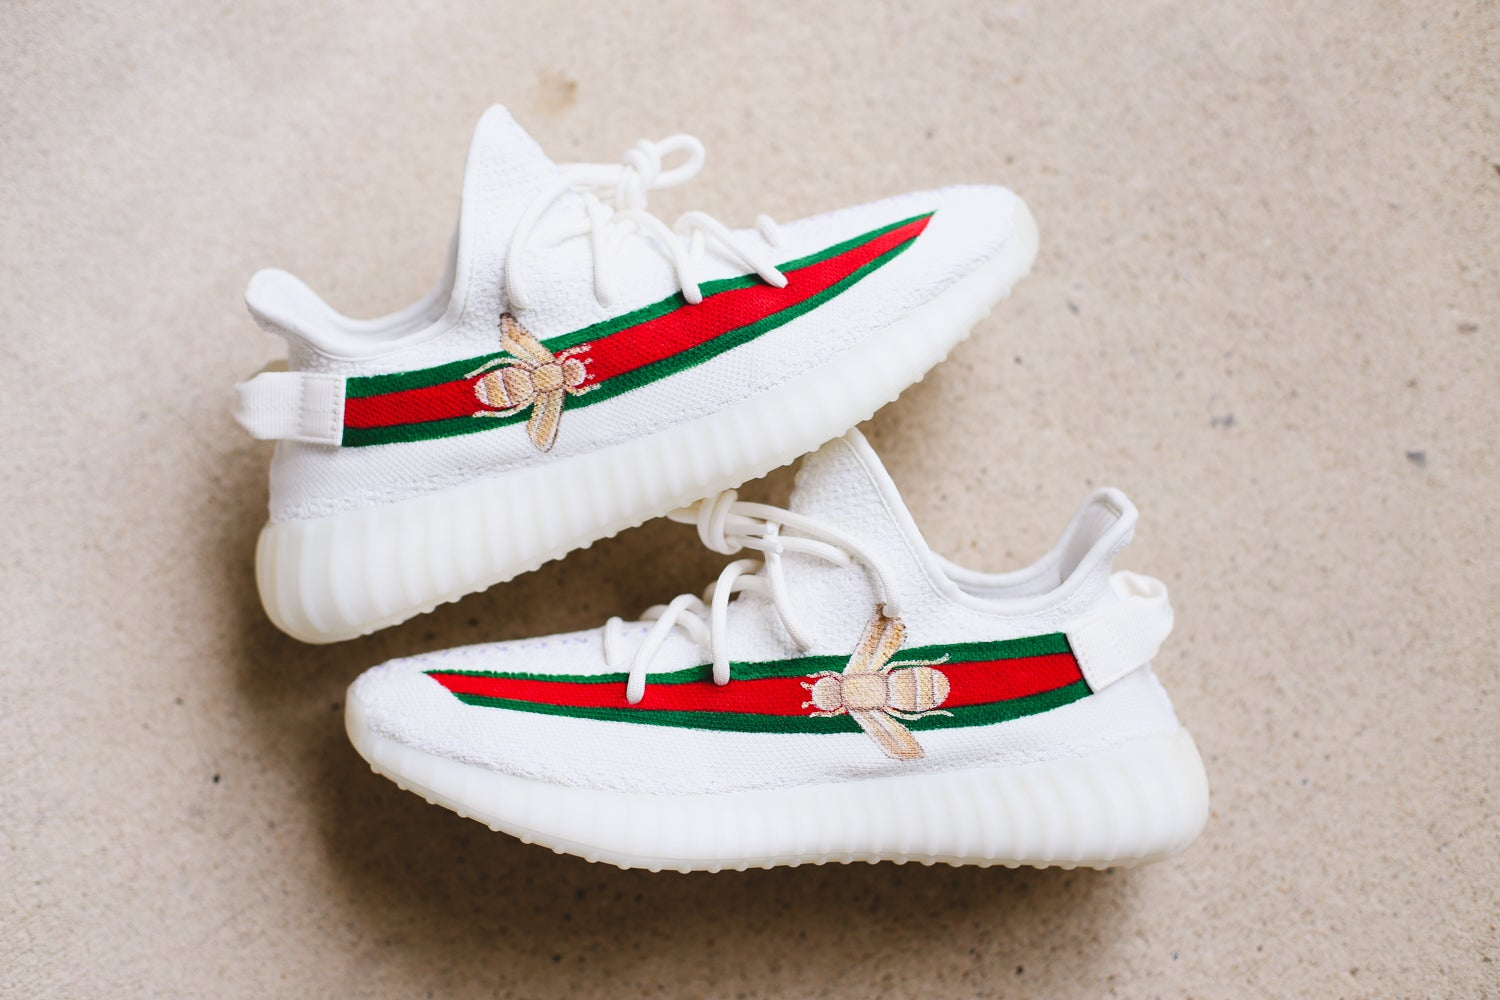 gucci yeezy